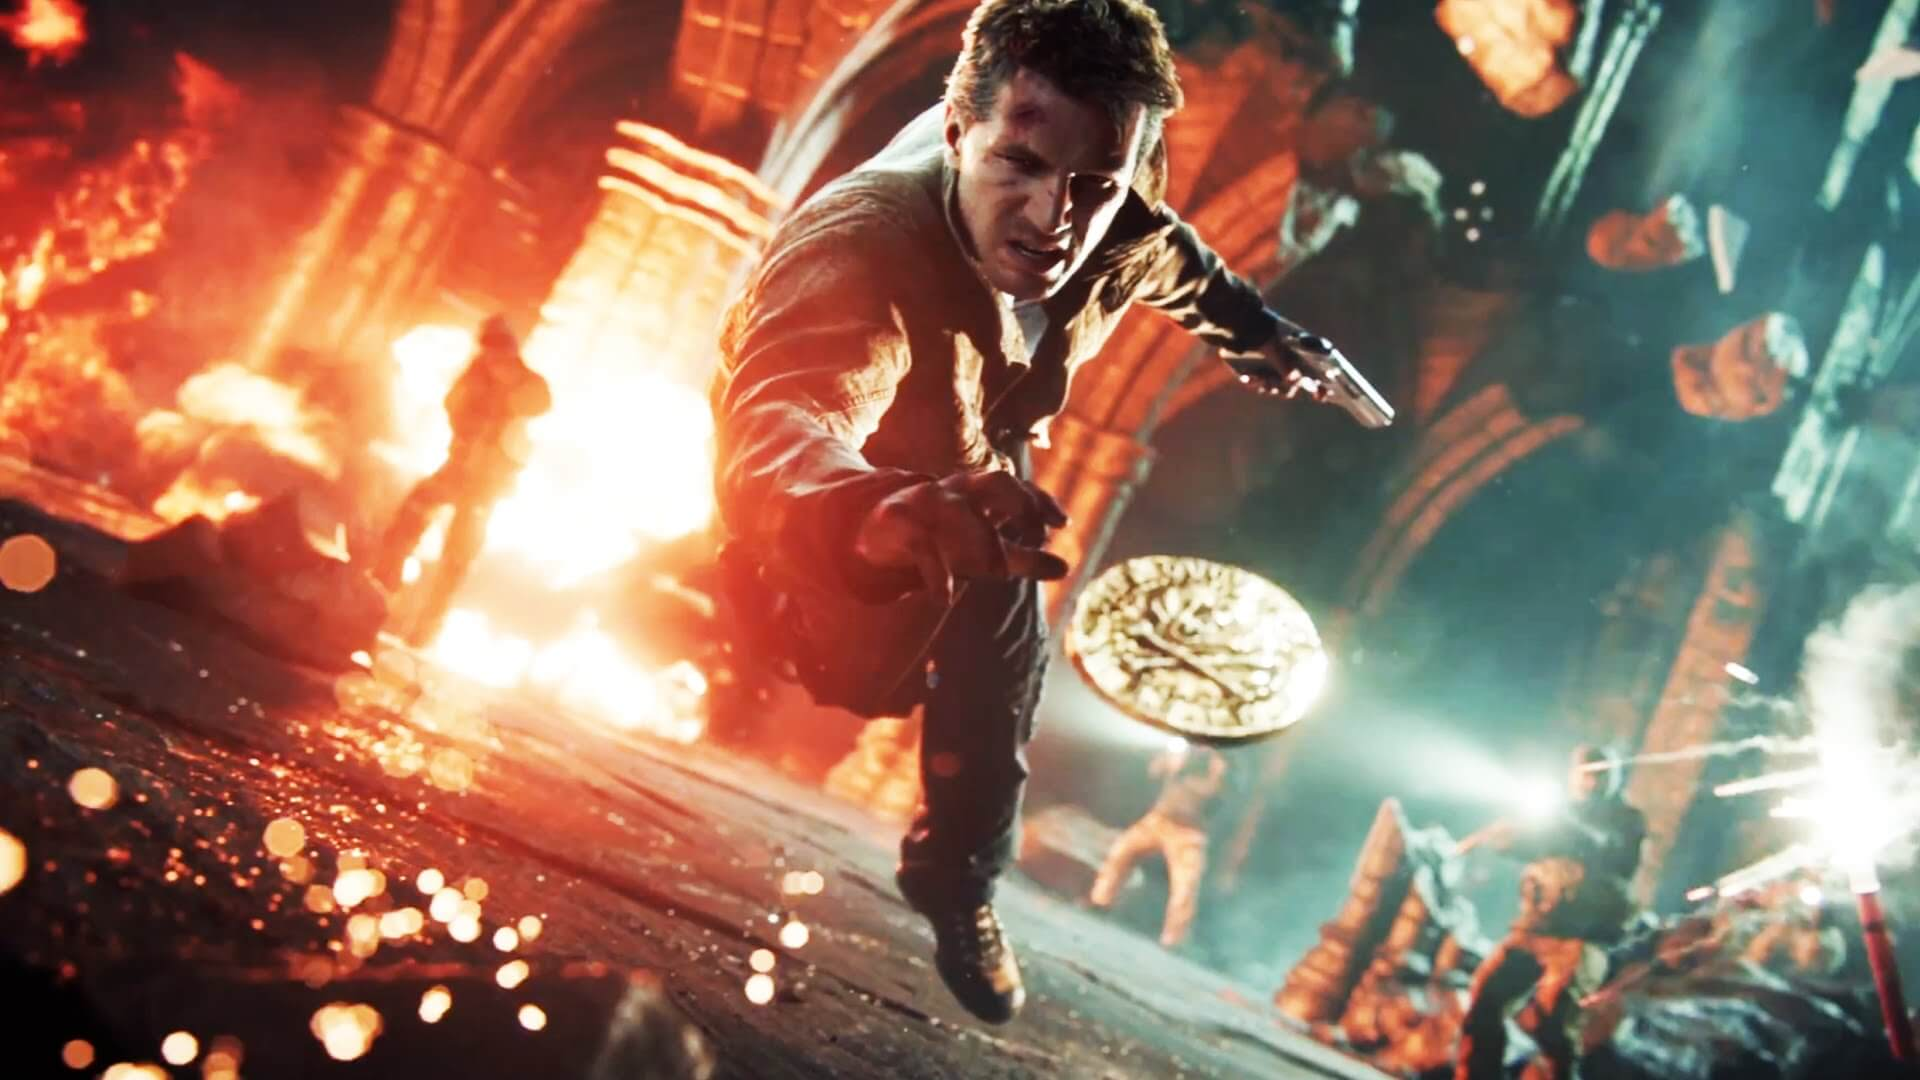 Here's The New Uncharted 4 CG Trailer